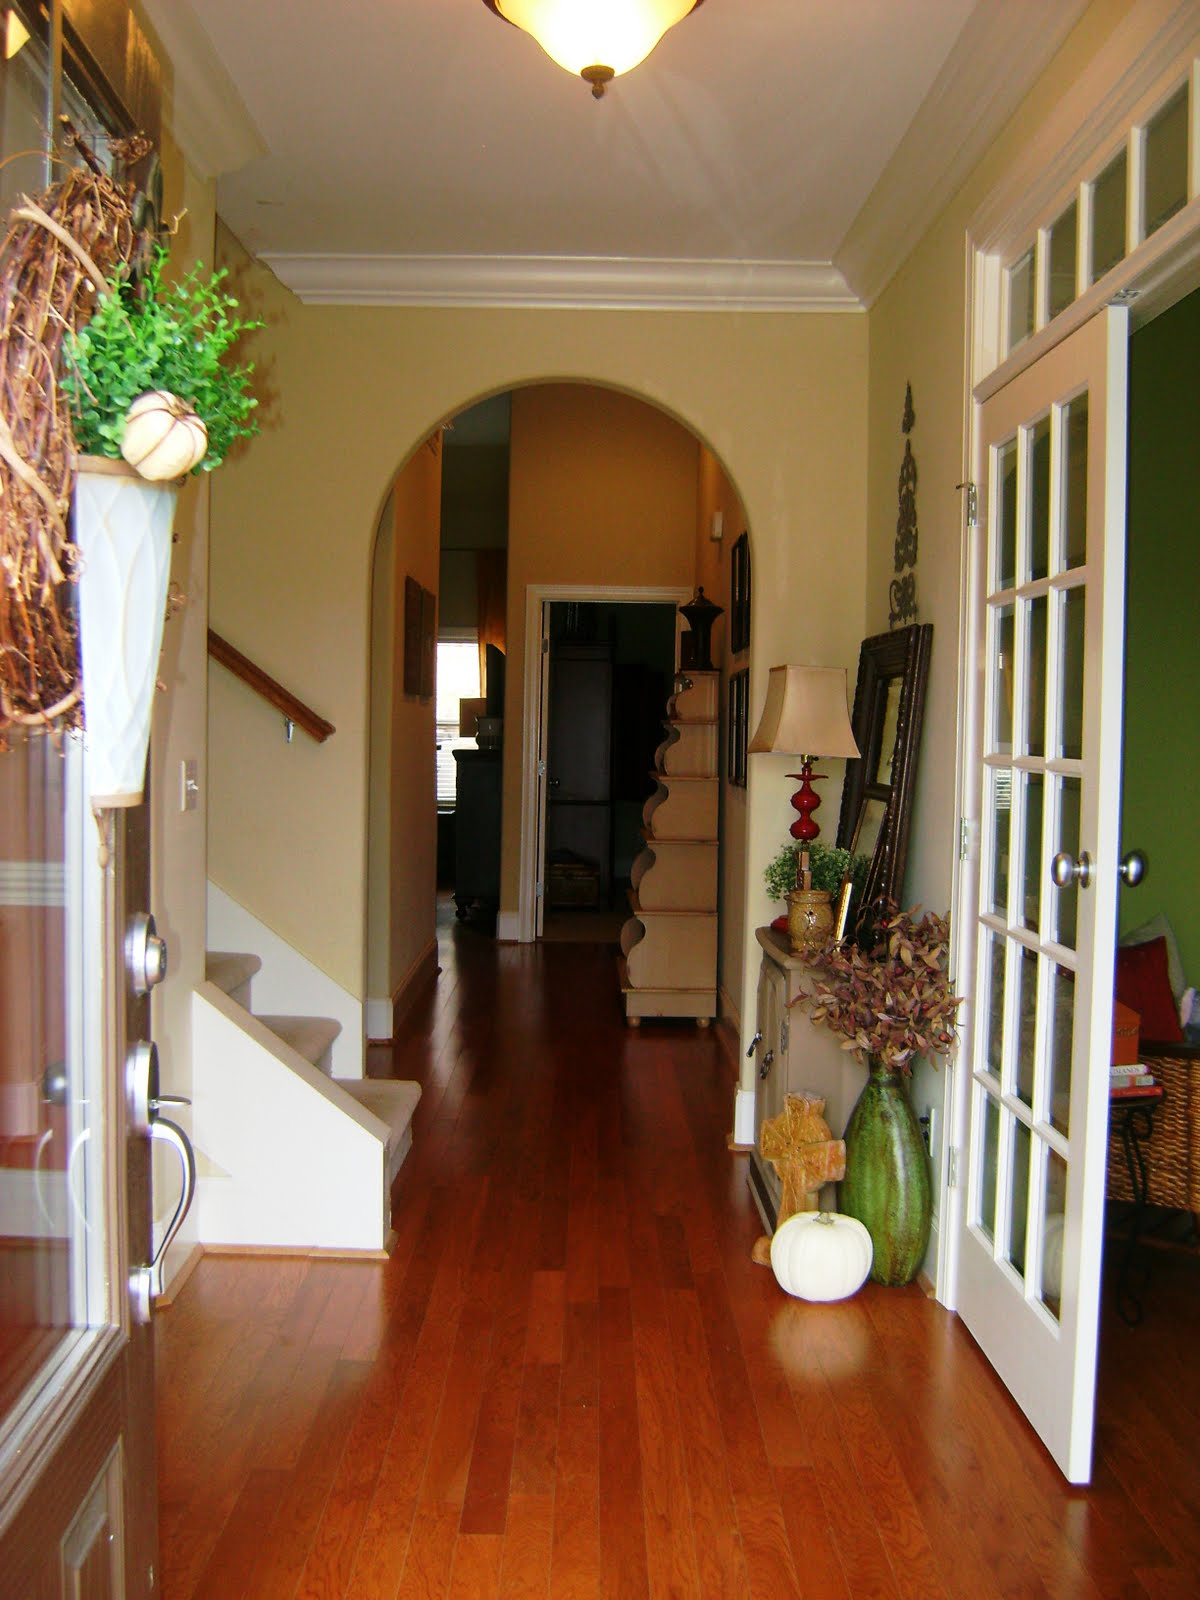 Kountry Chic Design: Show Us Your Life--Entry Ways & Foyers